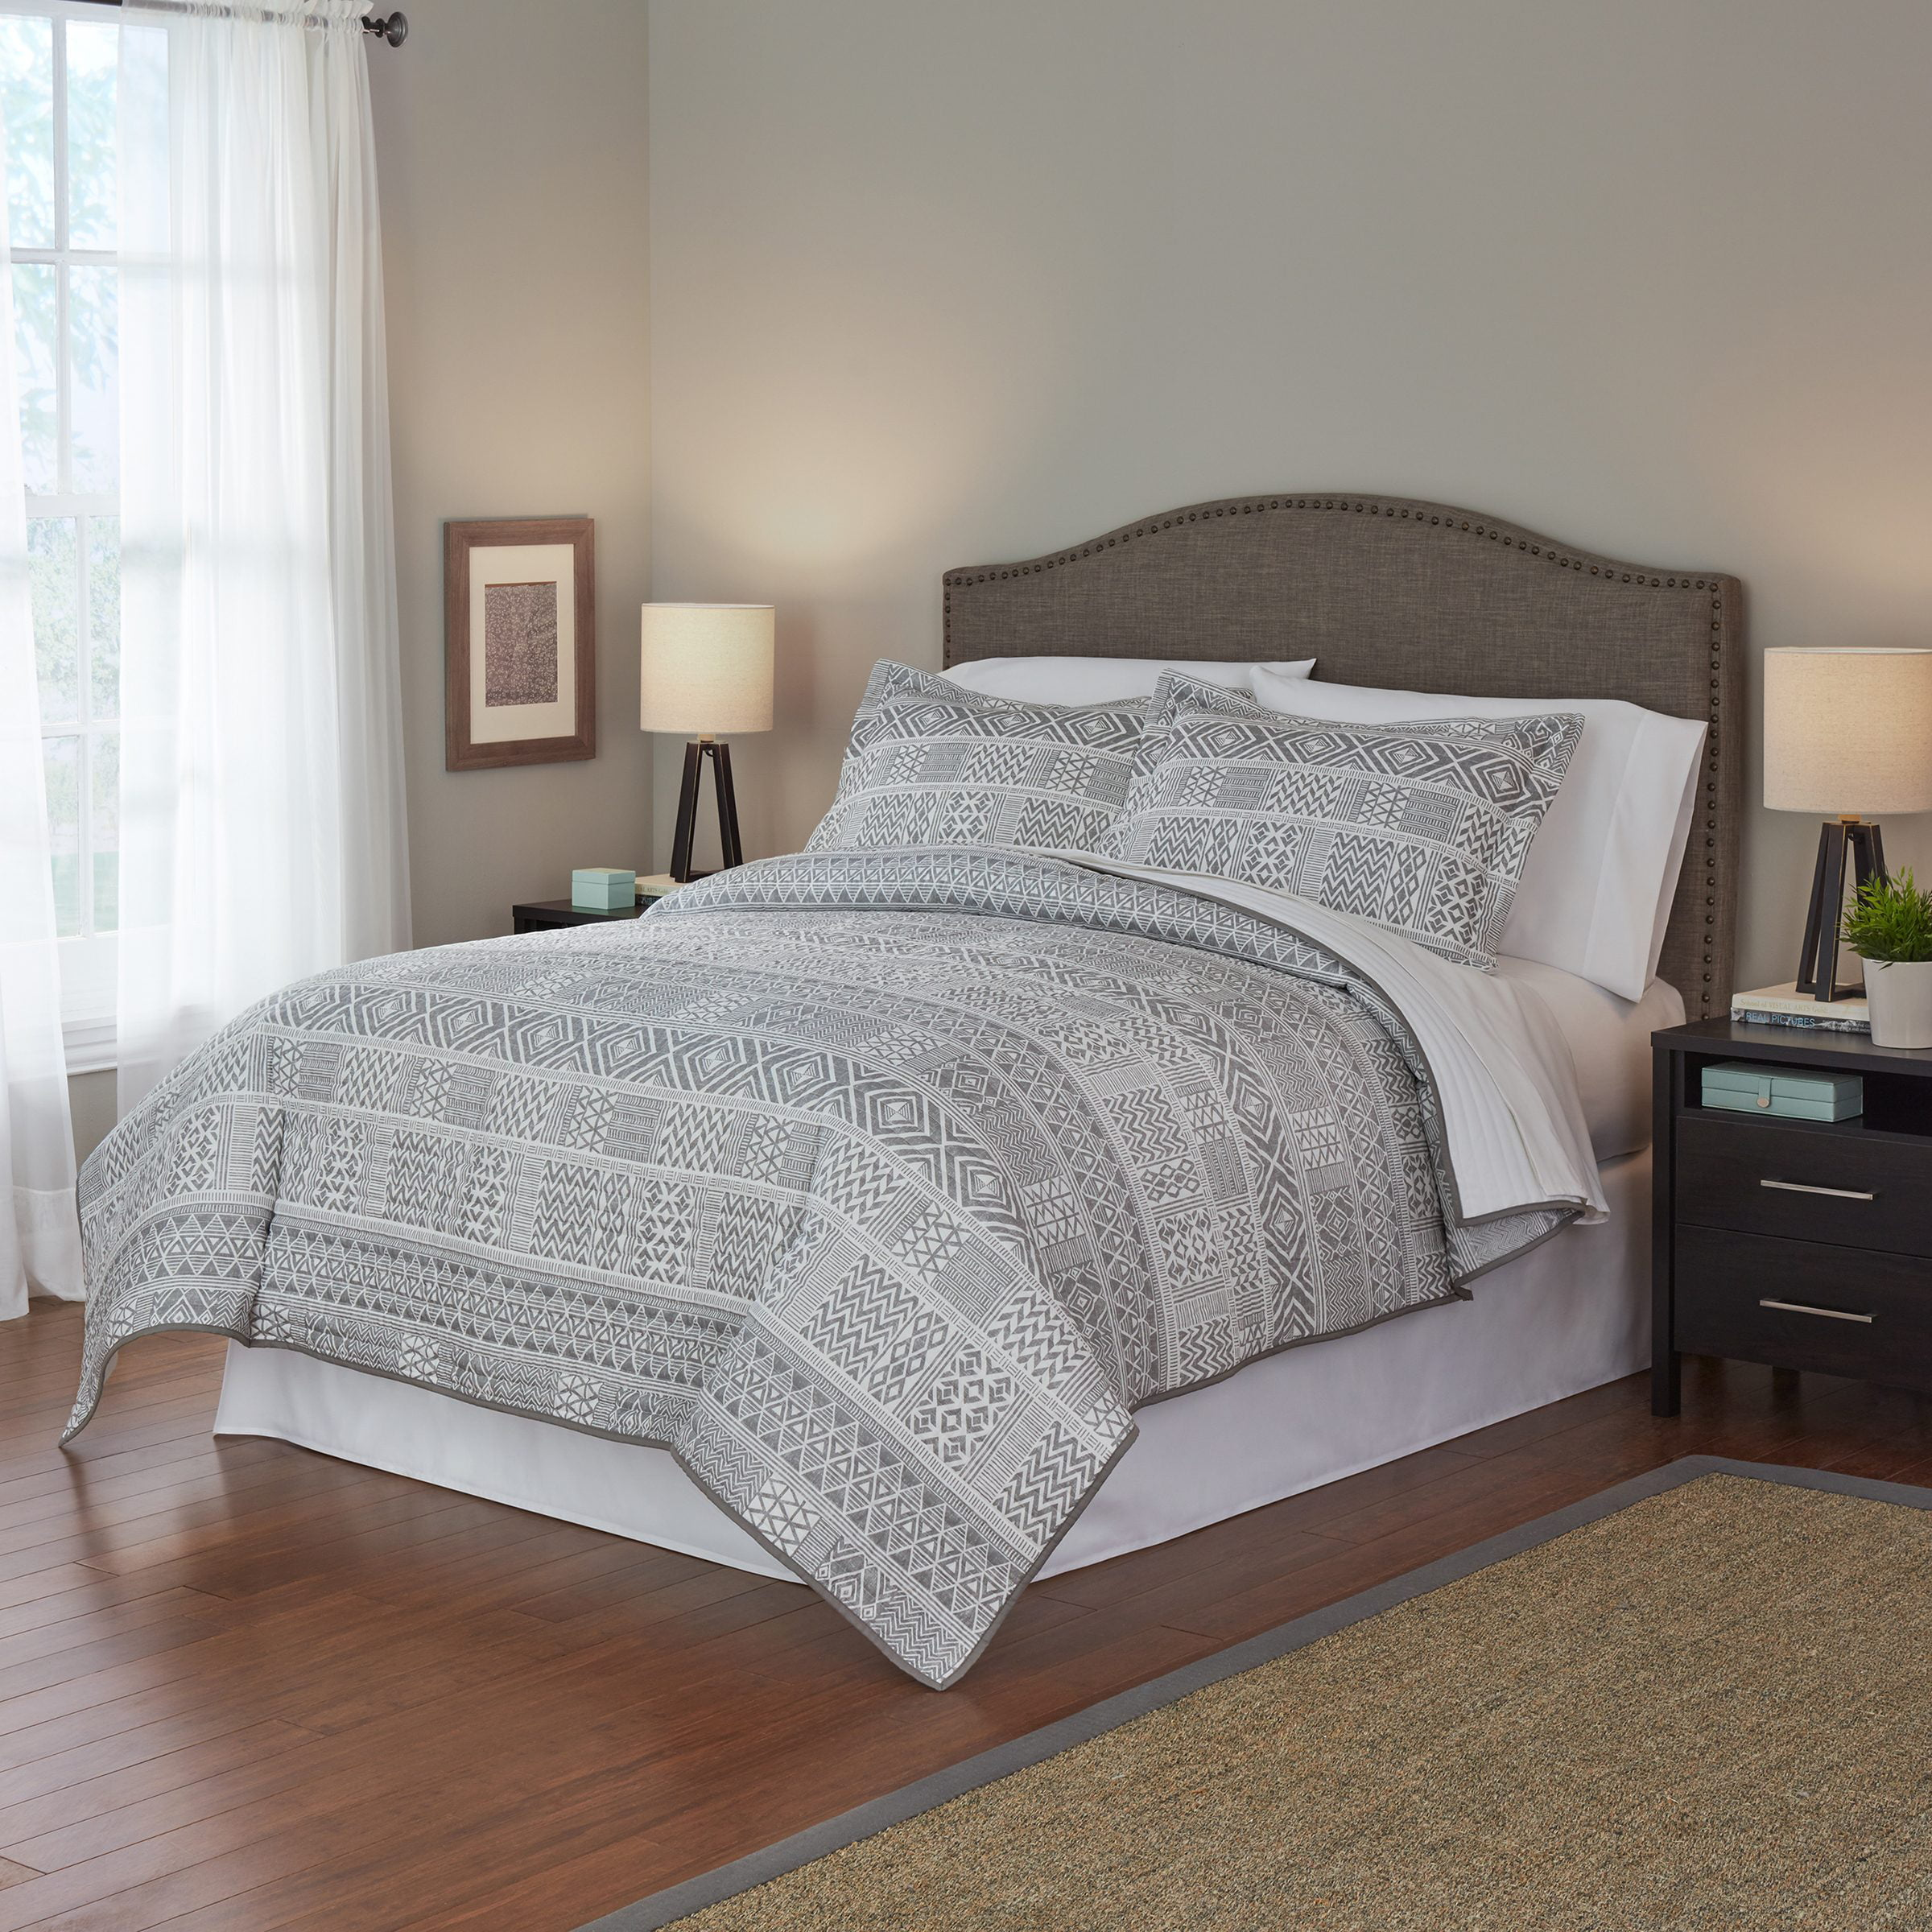 Mainstays Grey Aztec Quilt by Walmart Stores, Inc.